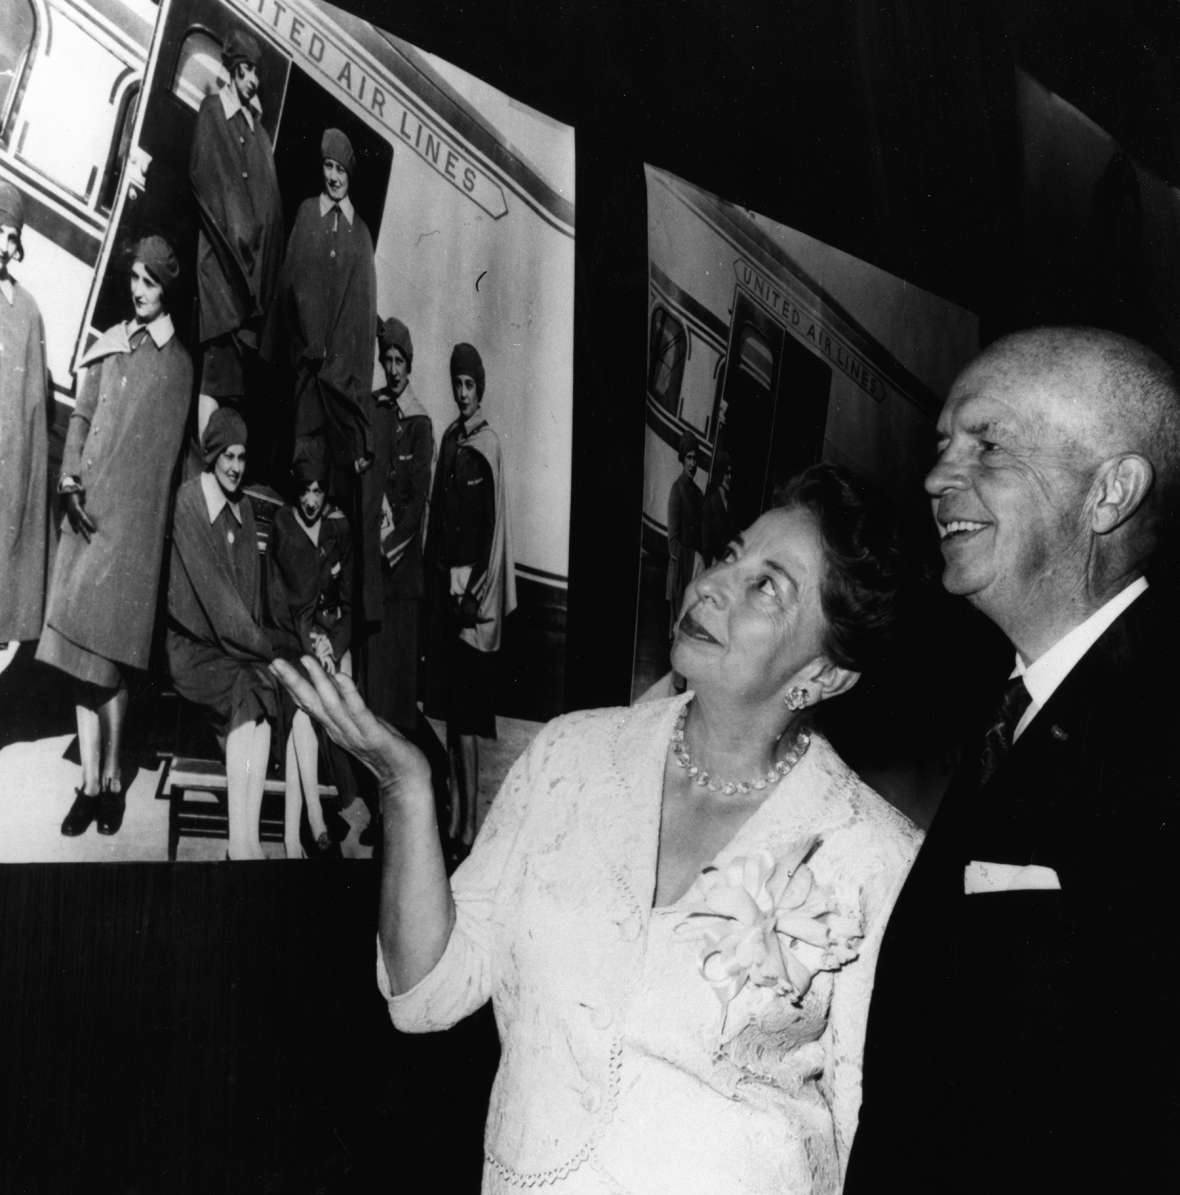 At the 30th anniversary of the United Air Lines stewardess service, Ellen Church and Steve Stimpson, the duo who first initiated the idea of hiring stewardesses, admire a photo of the original eight trained at Cheyenne in 1930. United Air Lines Archives.